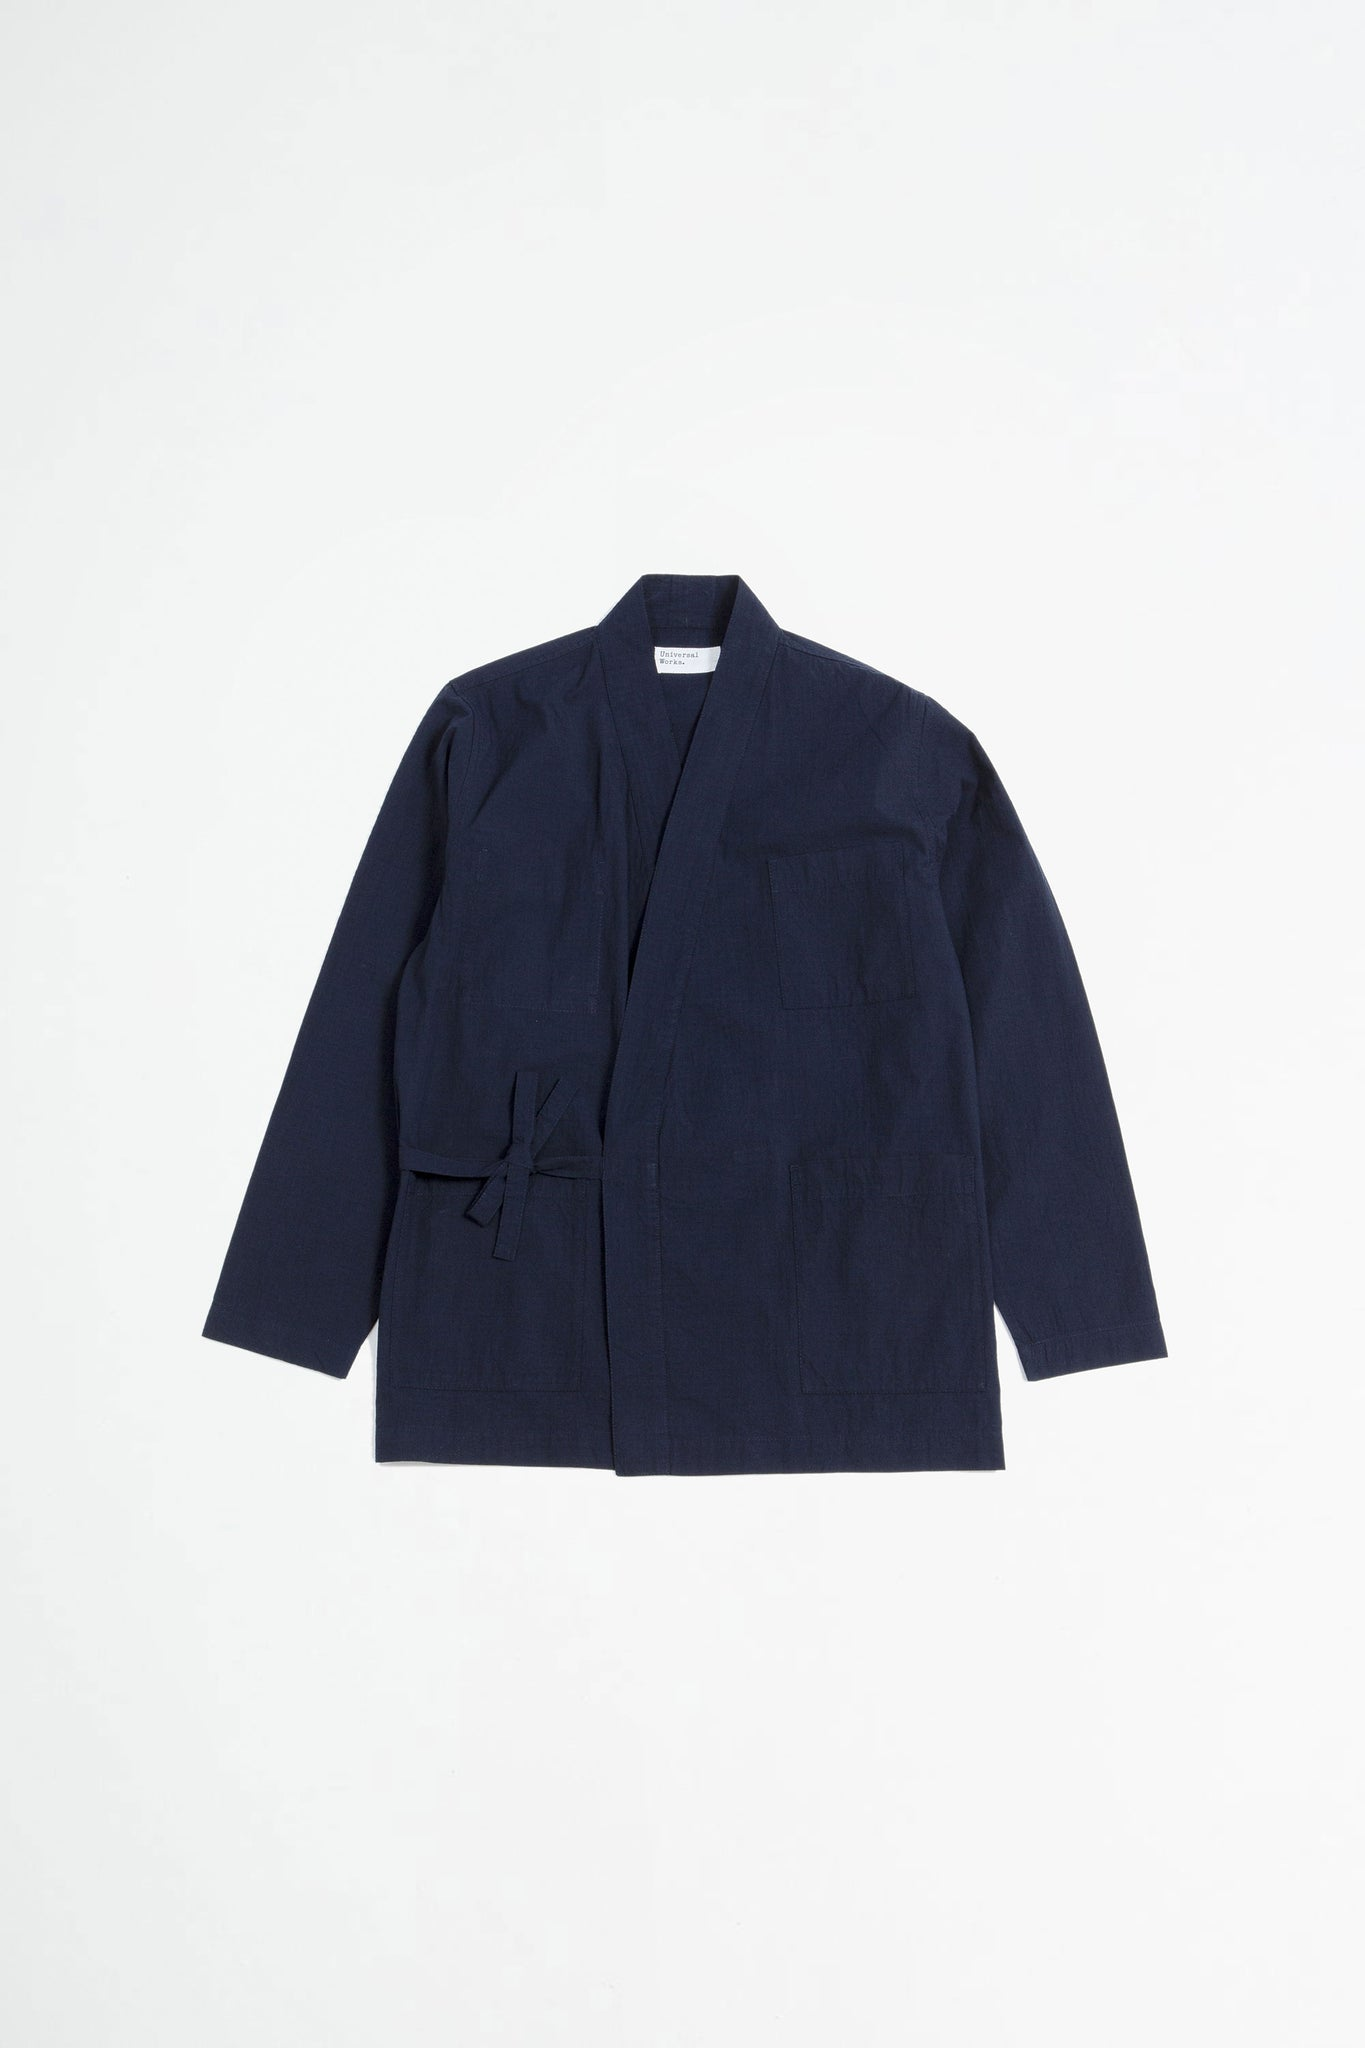 Kyoto work jacket ripstop navy